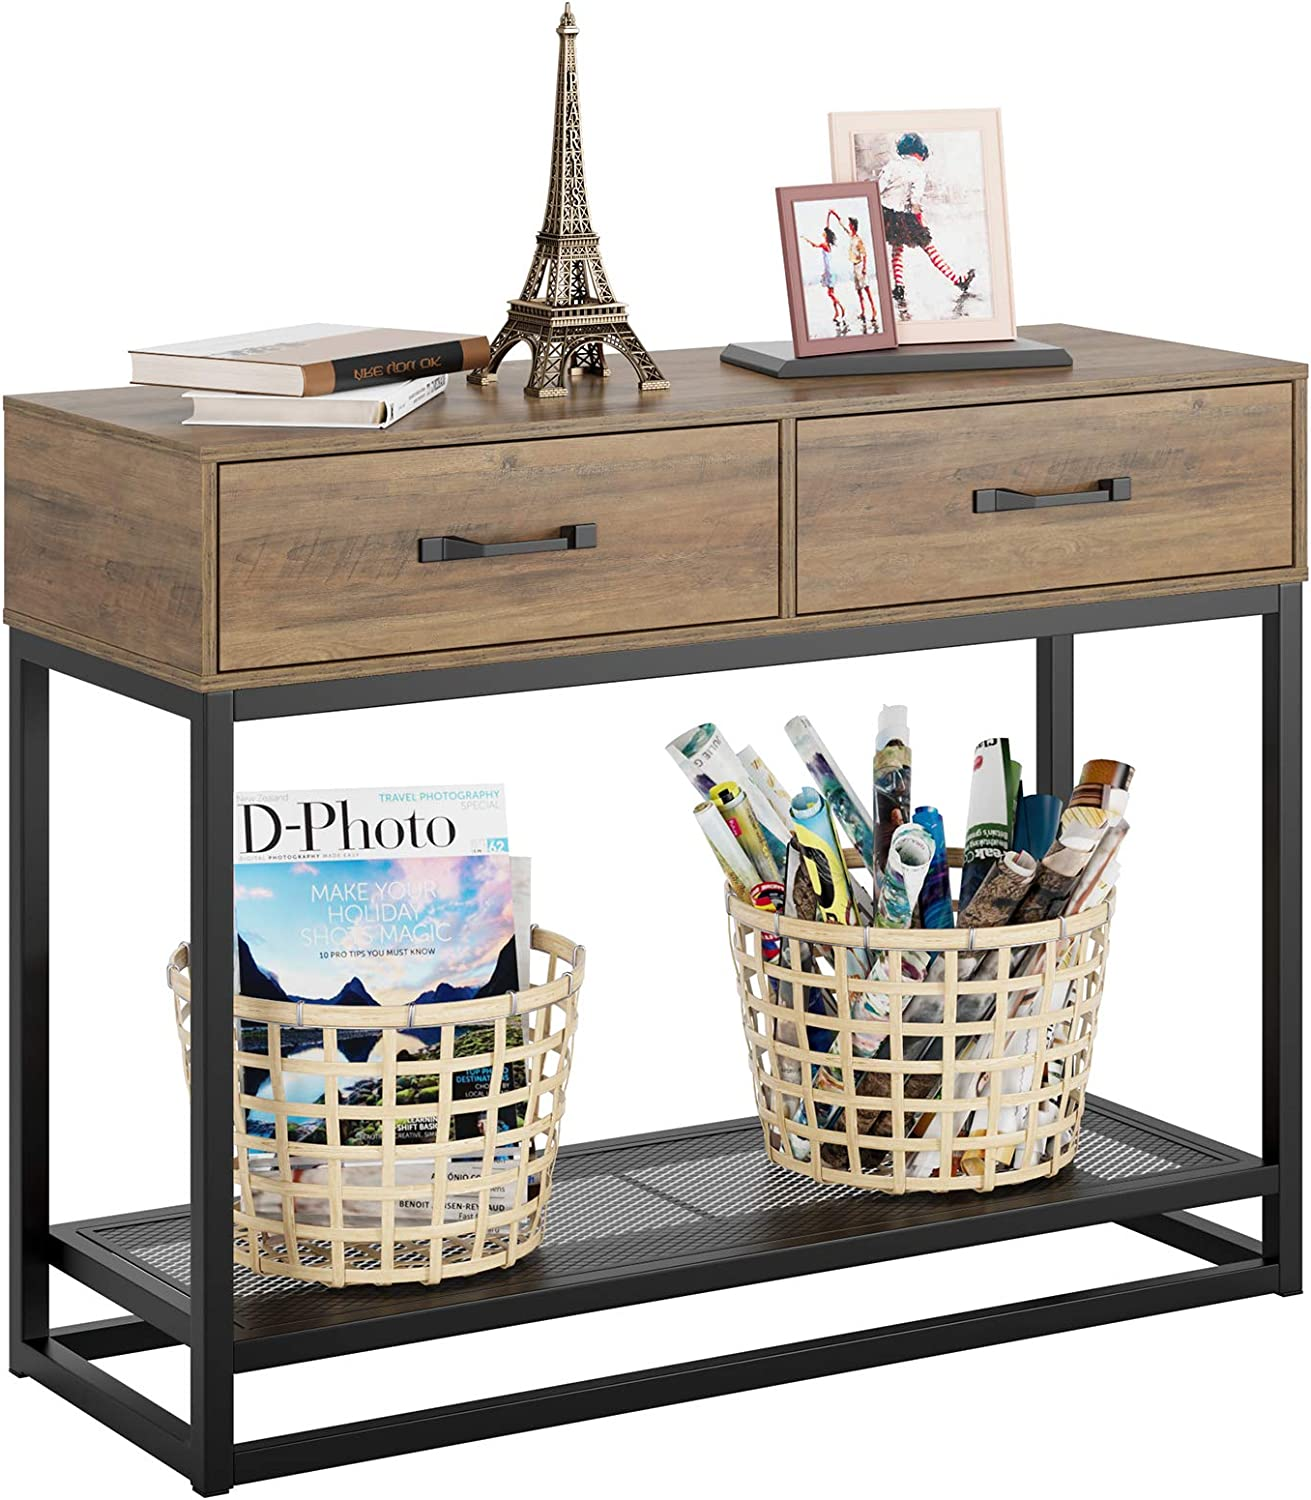 HOMECHO Console Table, Sofa Table, Industrial Entryway Table with 2 Drawers and Storage Shelf, for Entryway Hallway Living Room (40